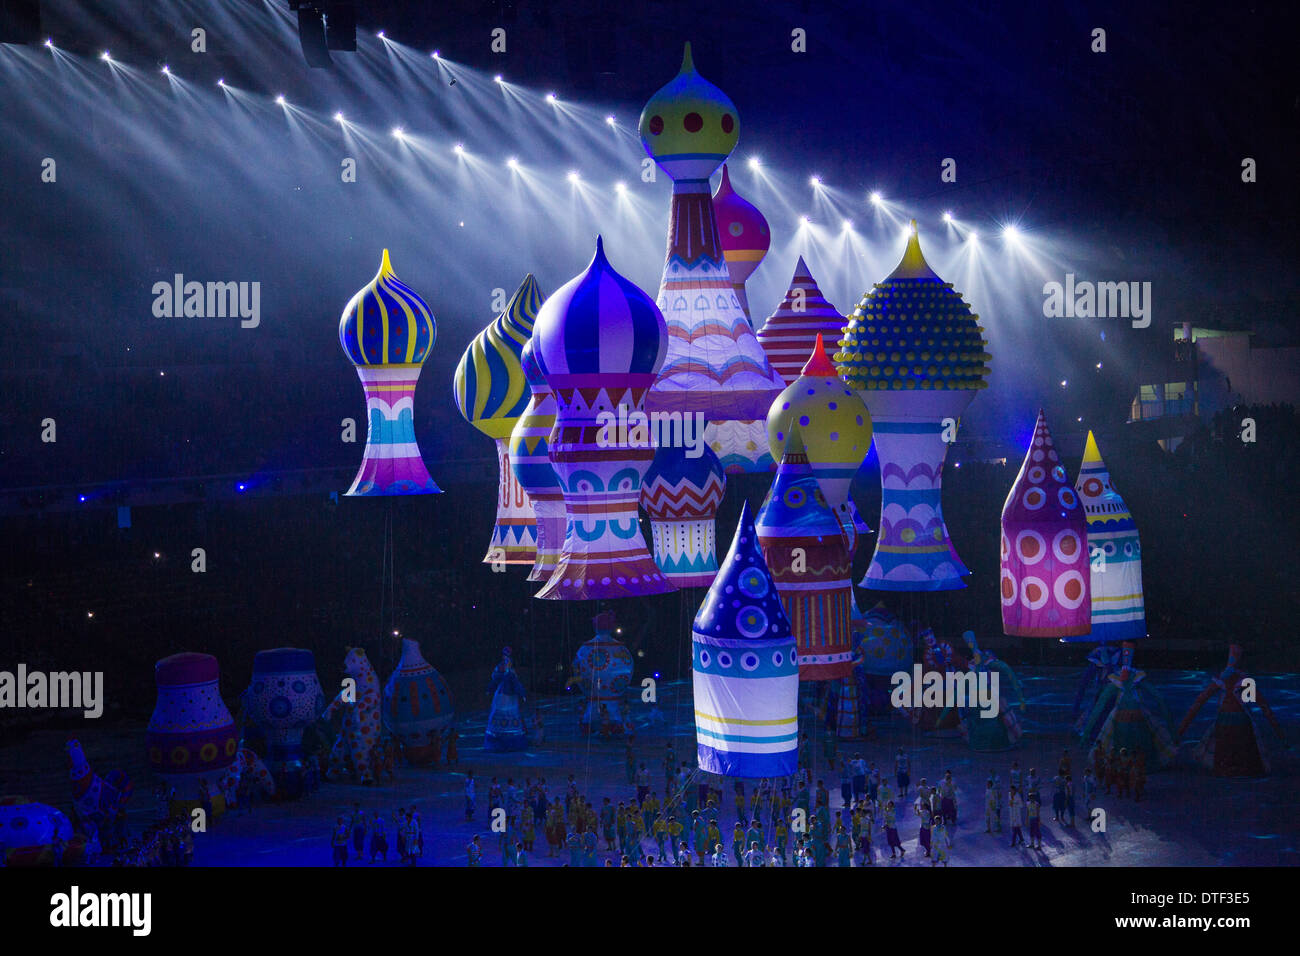 Opening Ceremonies at the Olympic Winter Games, Sochi 2014 - Stock Image